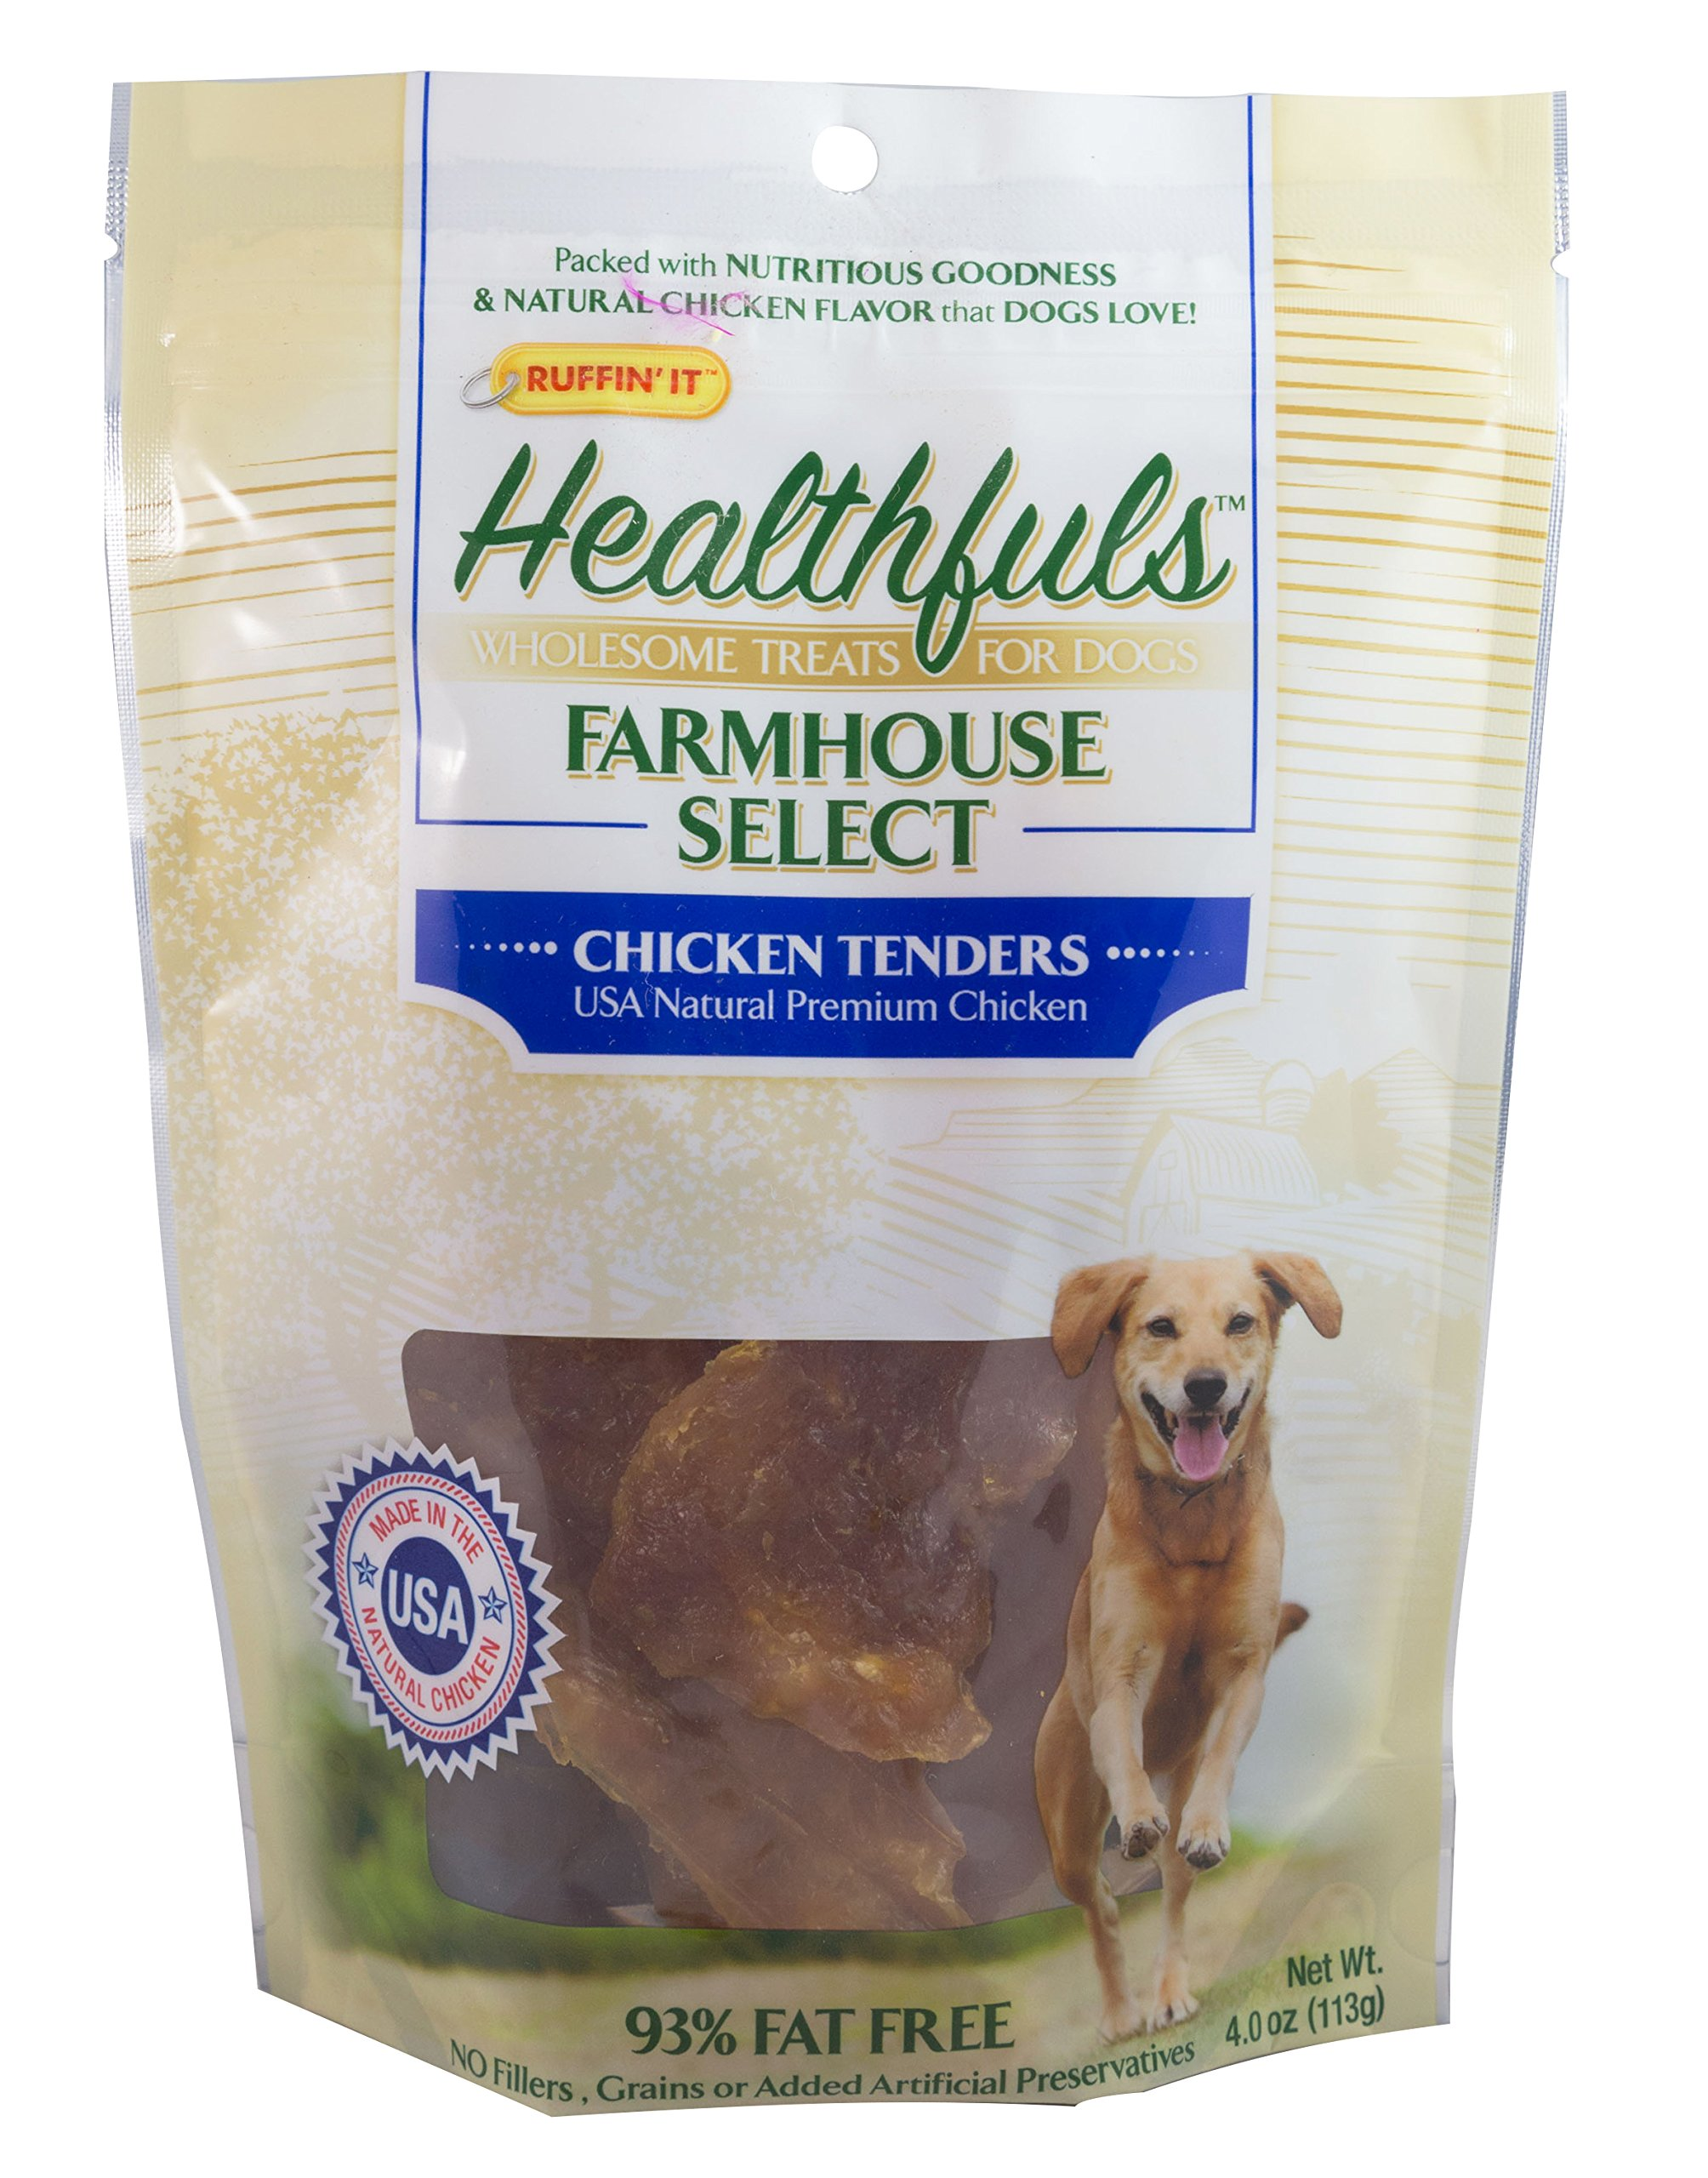 Ruffin It Healthfuls Wholesome Chicken Tenders Treat For Dogs - Made in USA, 3-Pack (12oz in Total) by Ruffin It (Image #2)